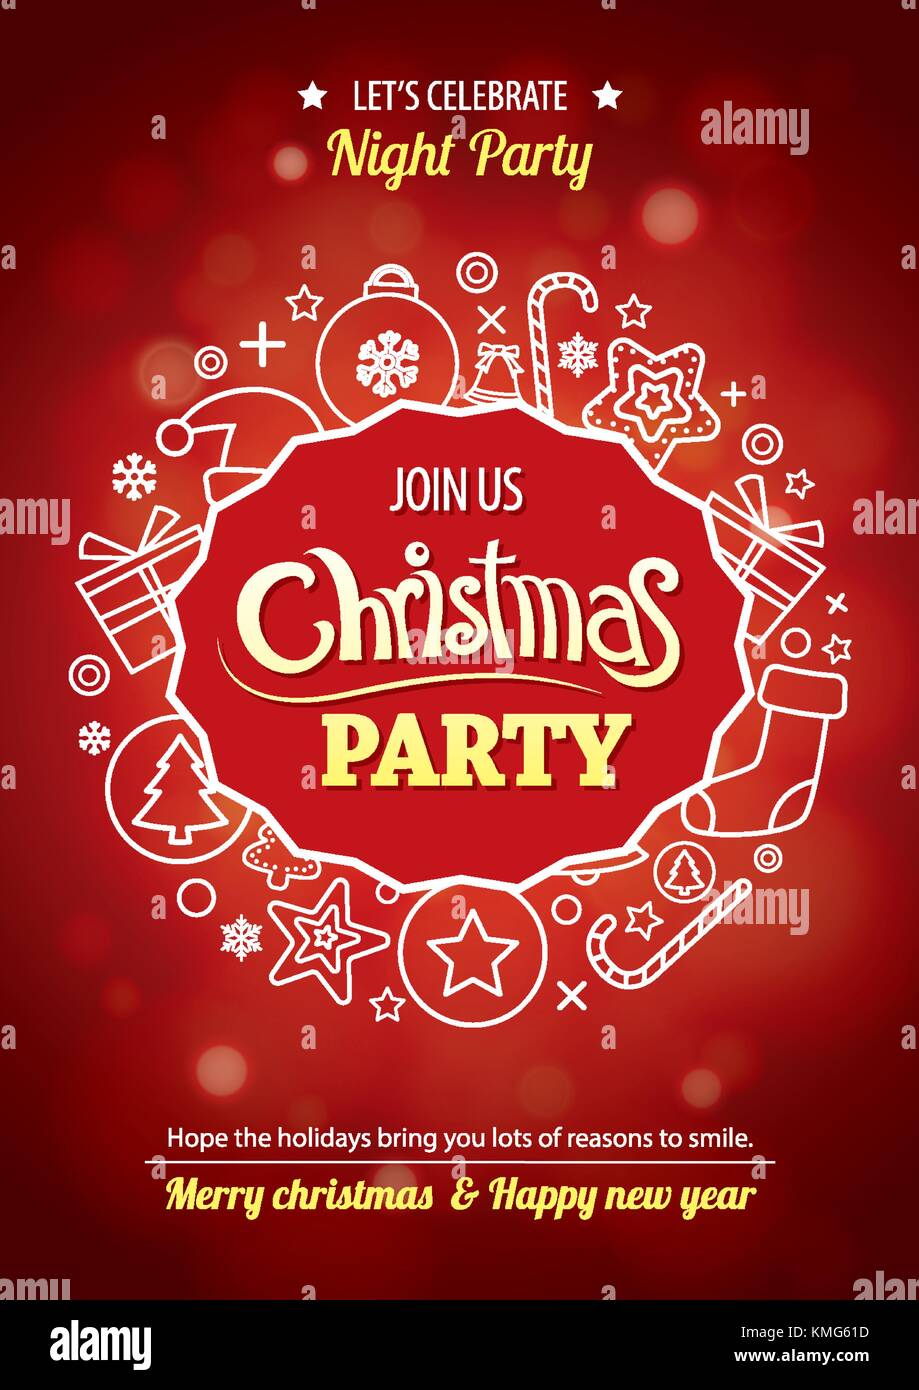 Merry Christmas Party For Flyer Brochure Design On Red Background